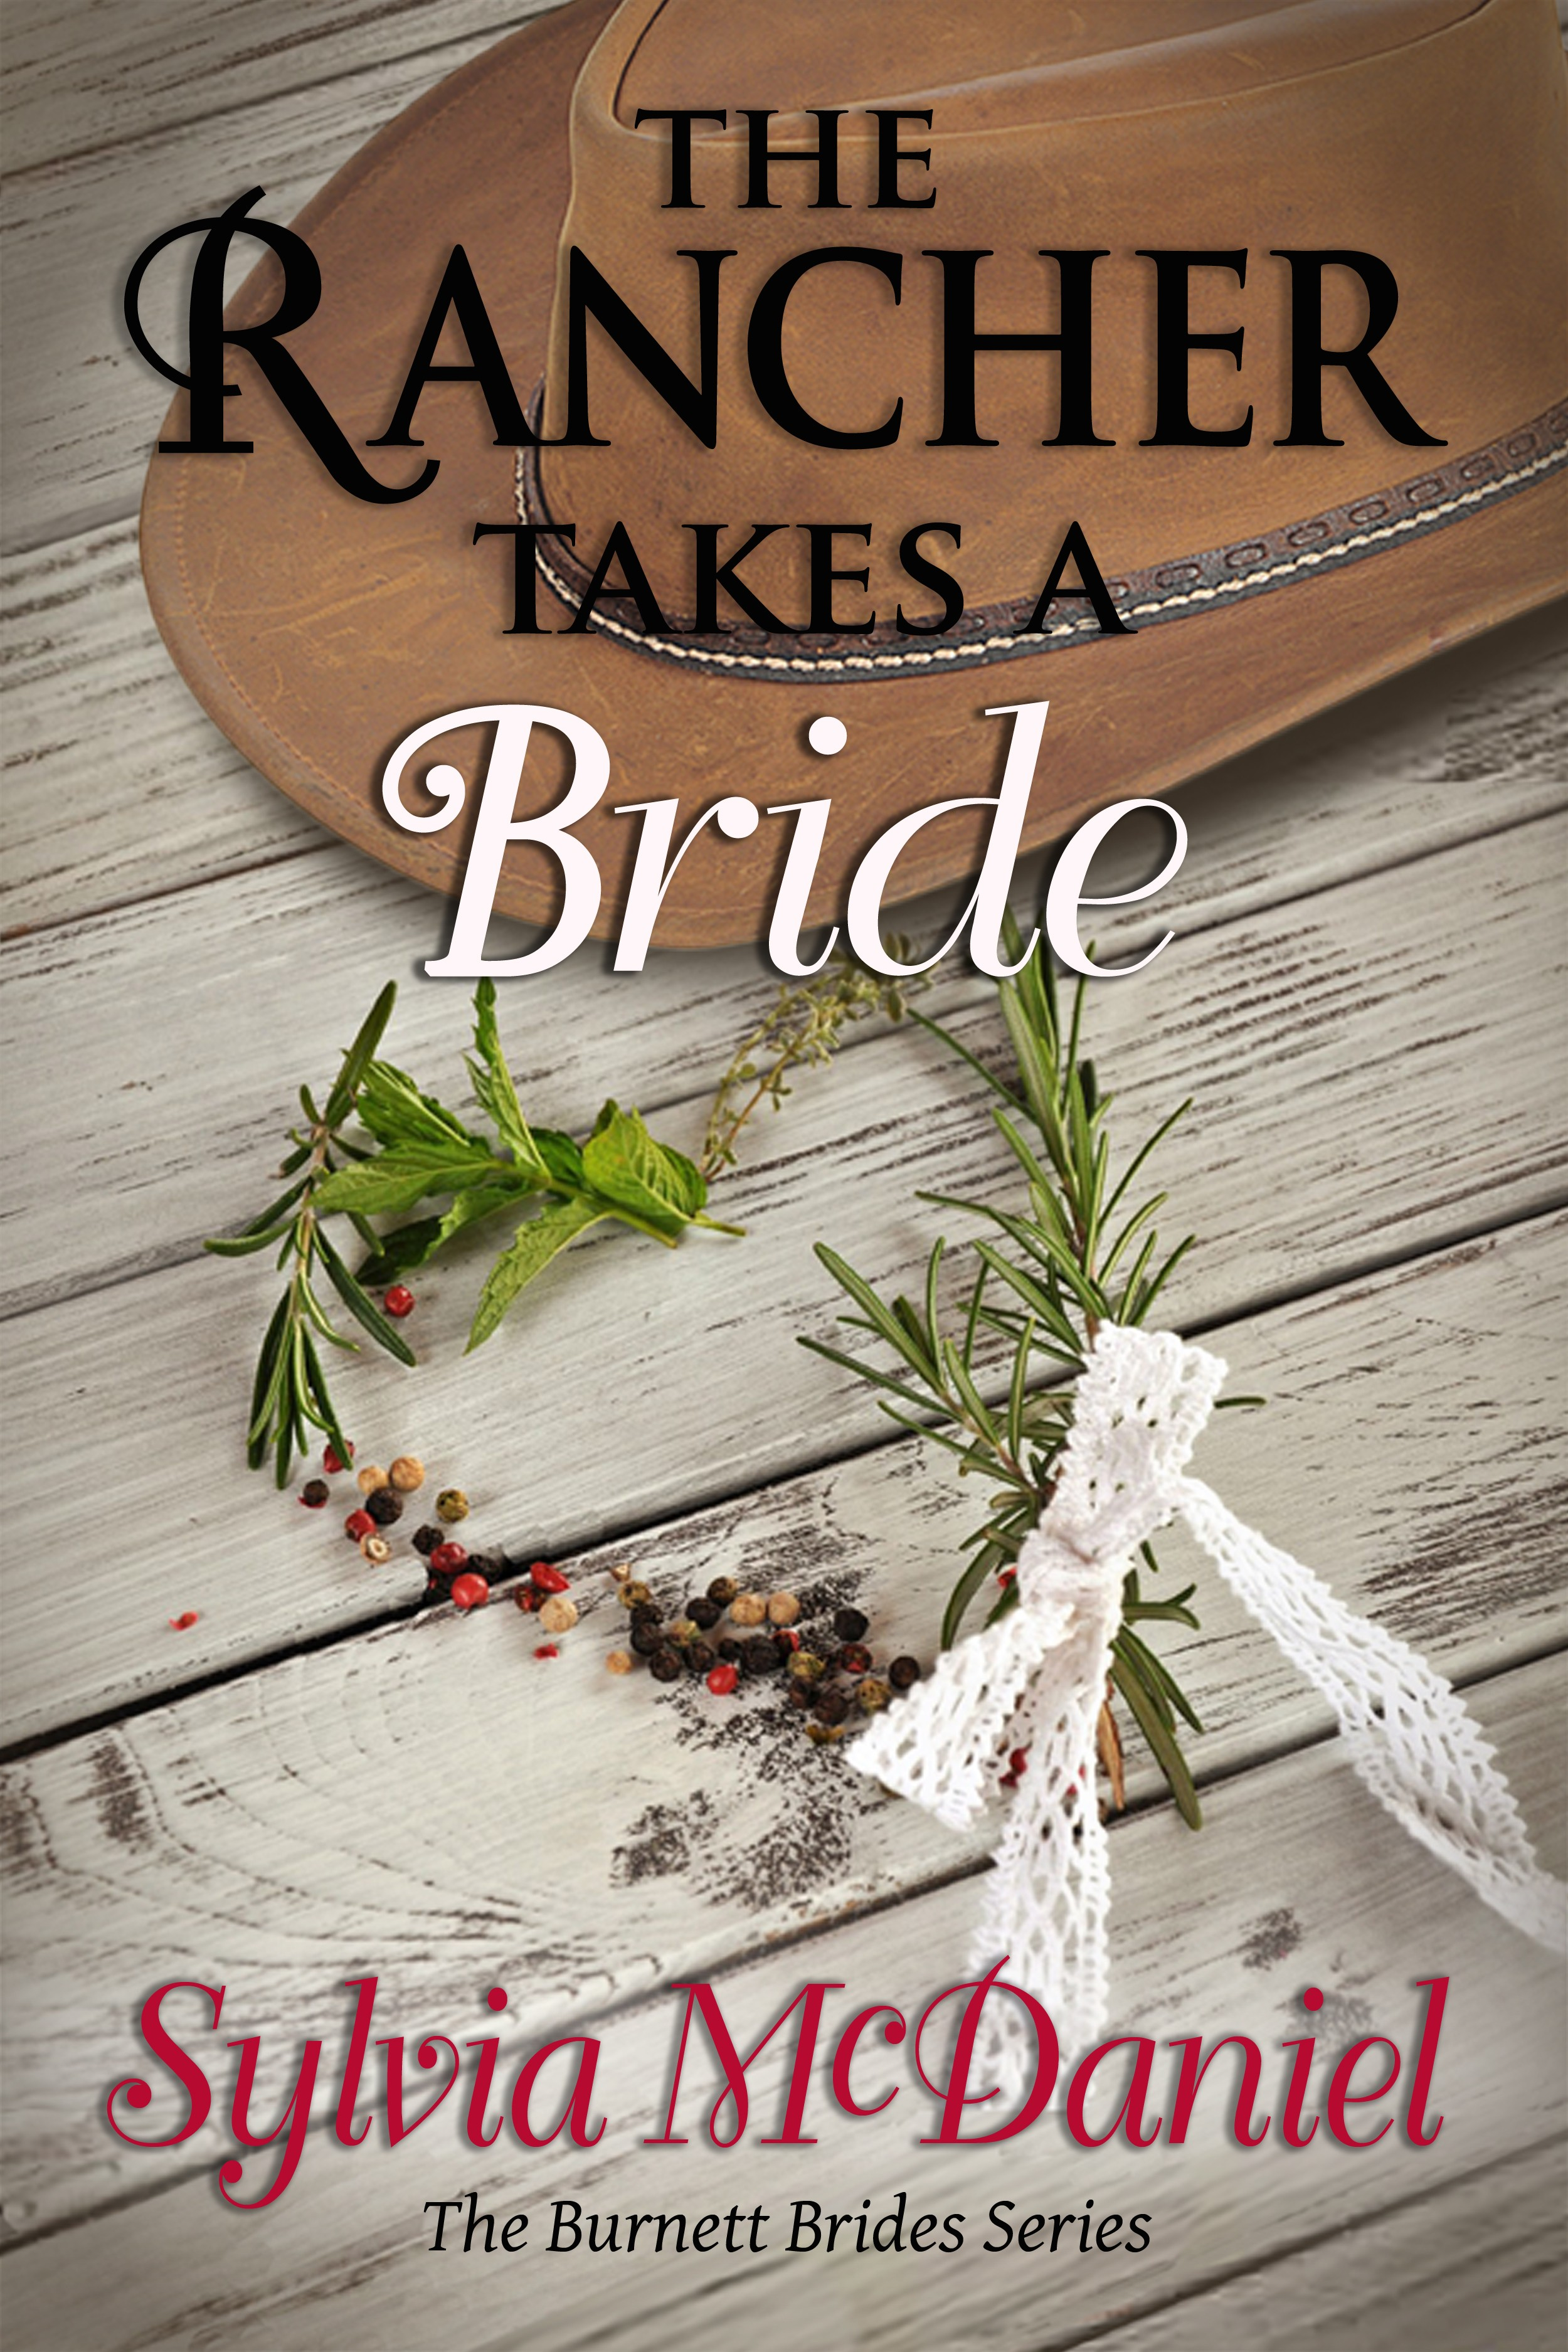 Smashwords western mdash free ebooks mdash most downloaded first the rancher takes a bride by sylvia mcdaniel fandeluxe Image collections